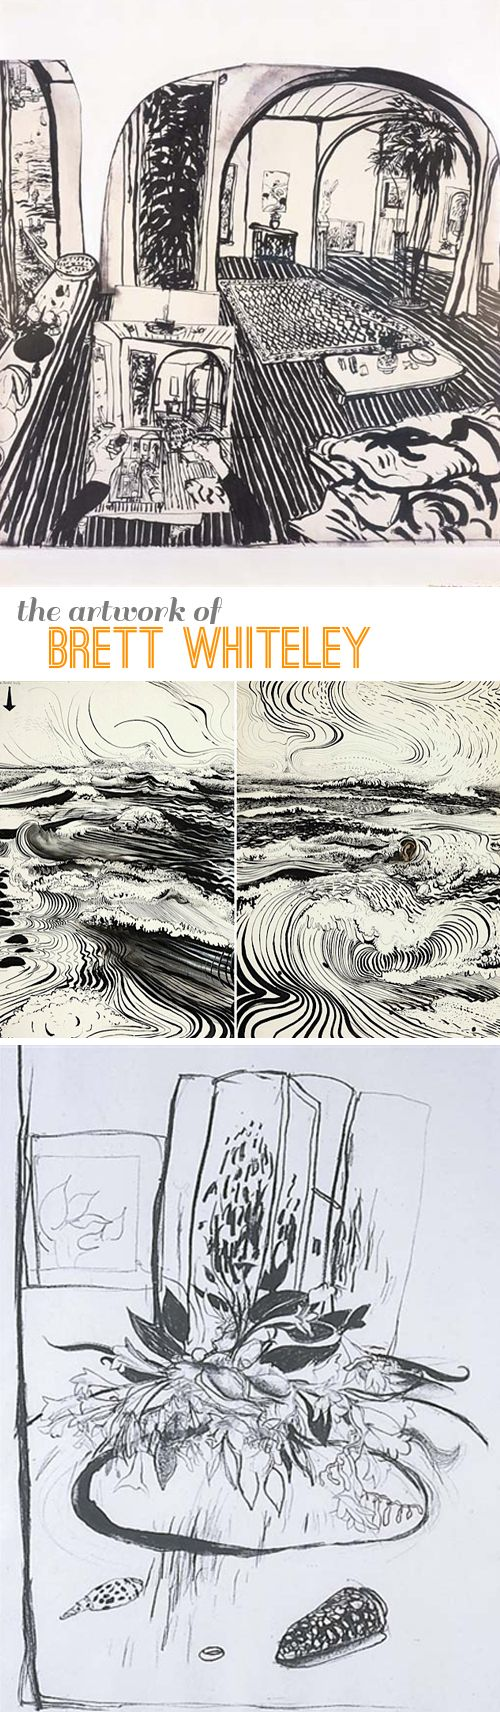 Brett Whiteley – bold lines make great drawings